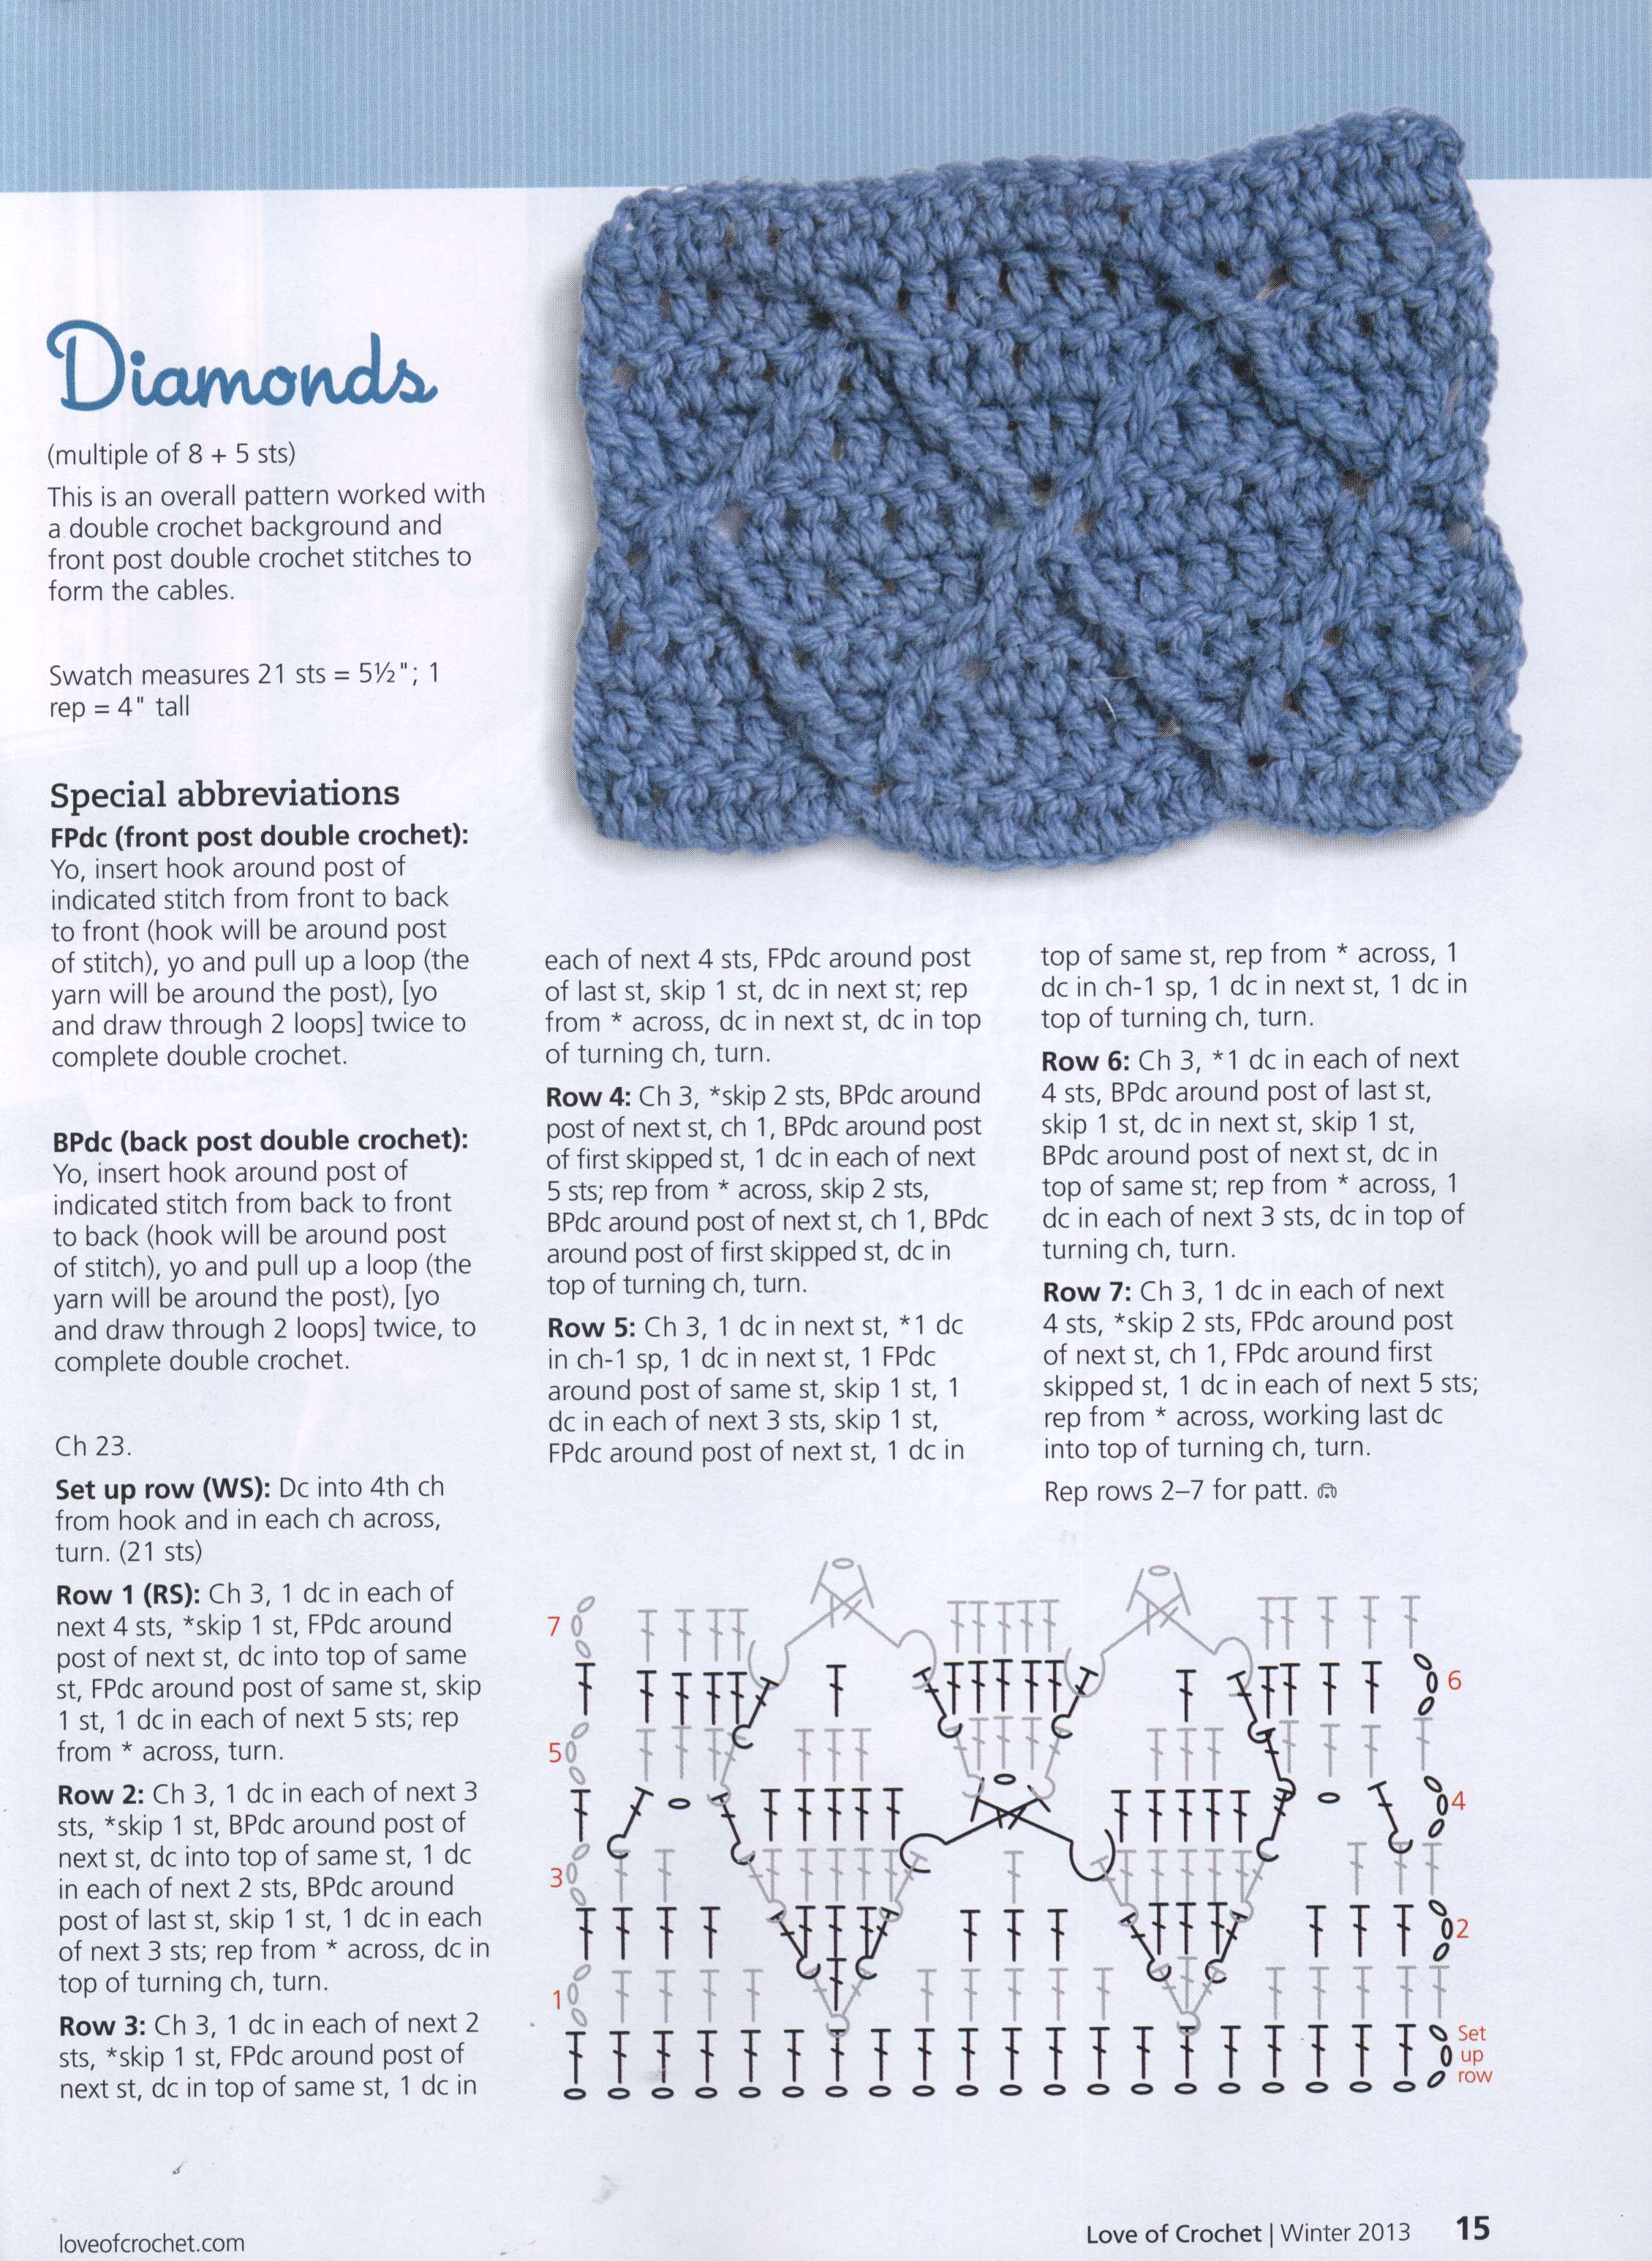 Crochet Cable Stitch Instructions : Crochet cable stitches ? Crochet Kingdom